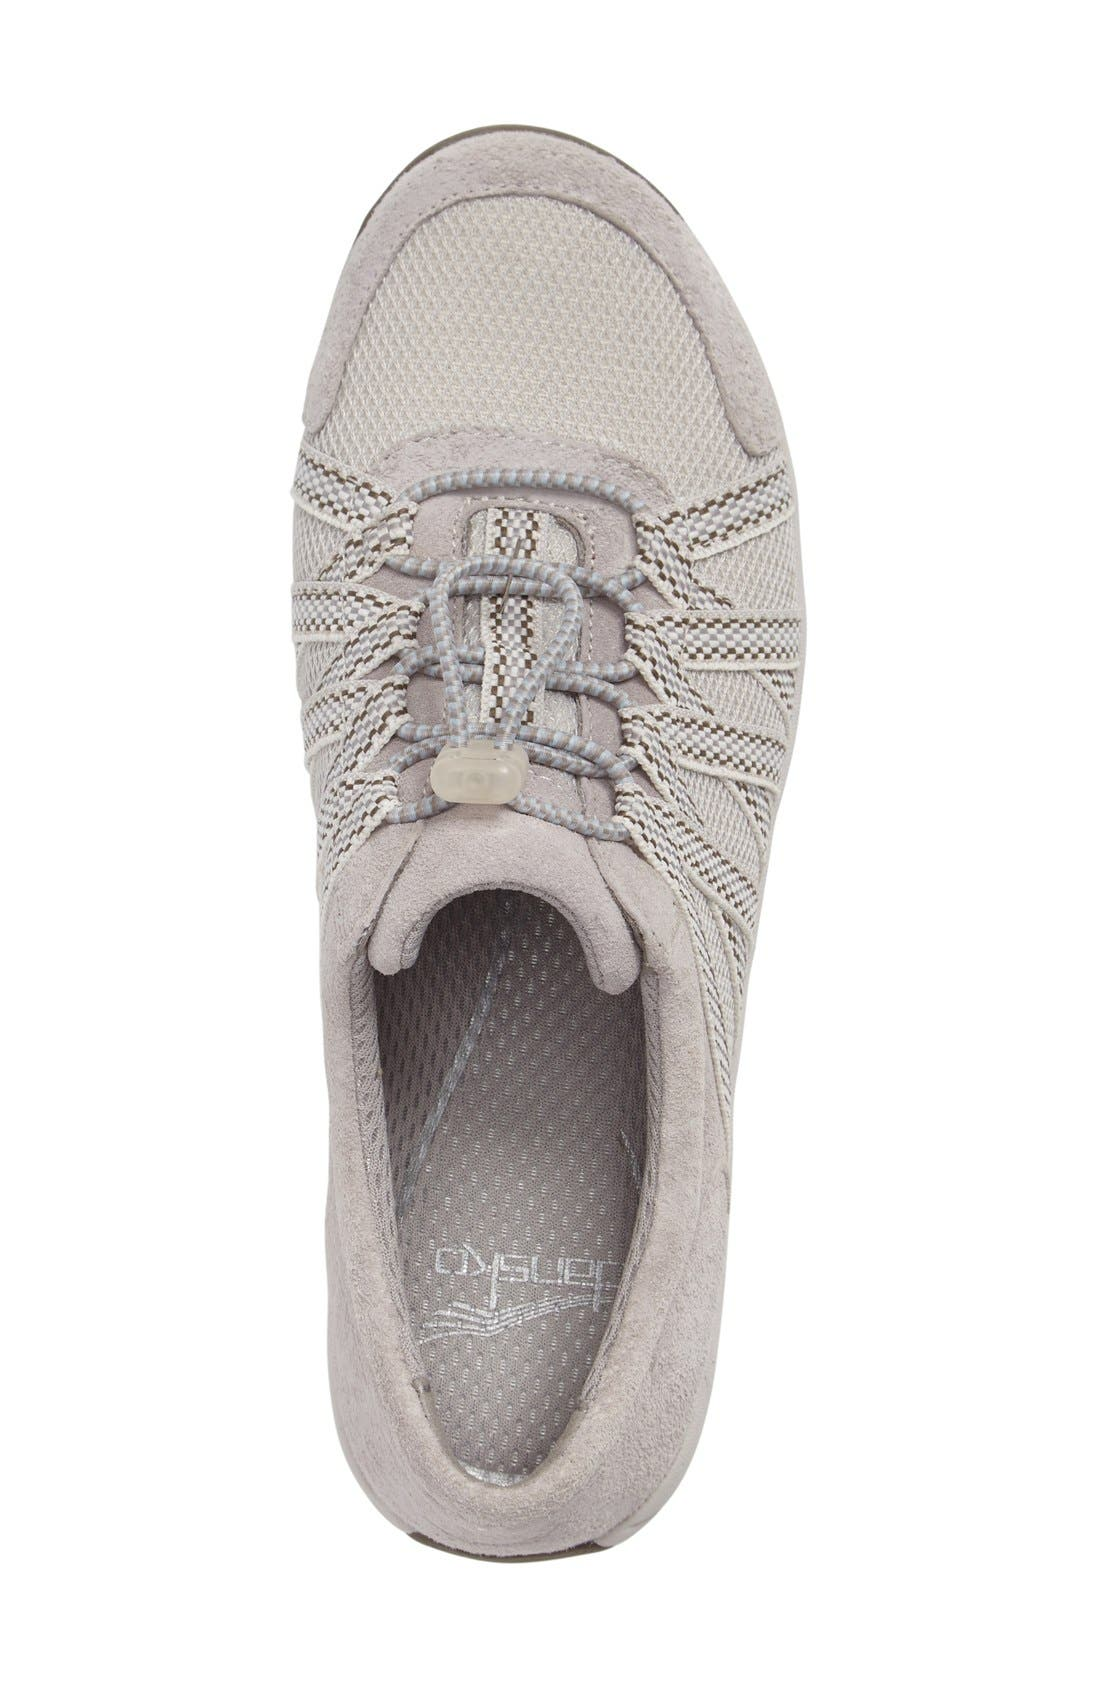 Halifax Collection Honor Sneaker,                             Alternate thumbnail 24, color,